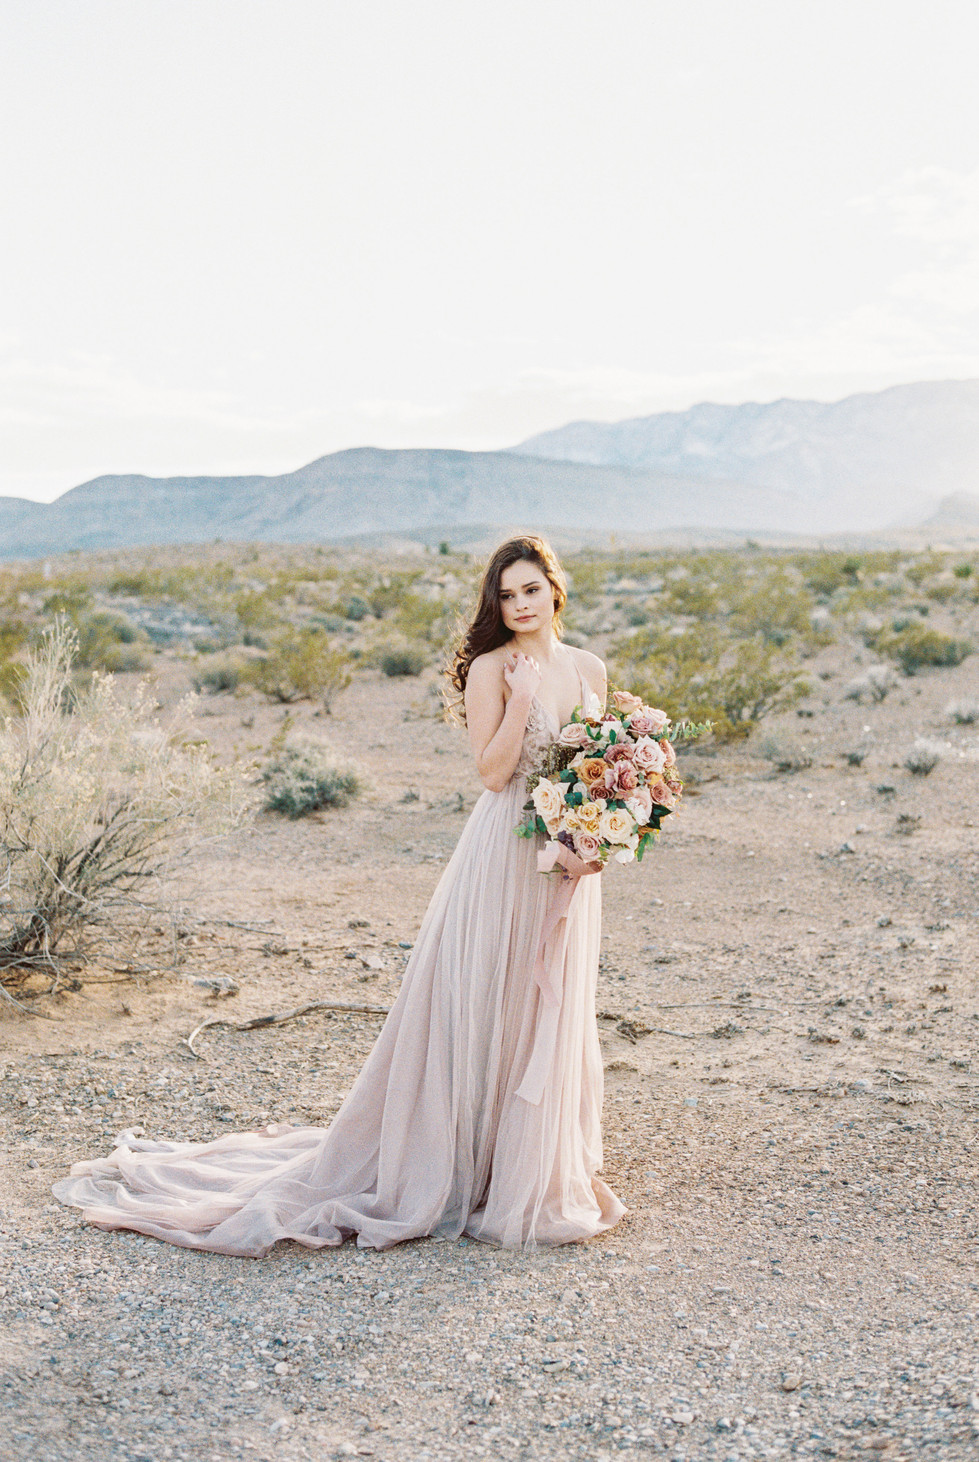 mauve, blush, and ivory bridal bouquet, tied with silk ribbons. Photo: Ryann Lindsay